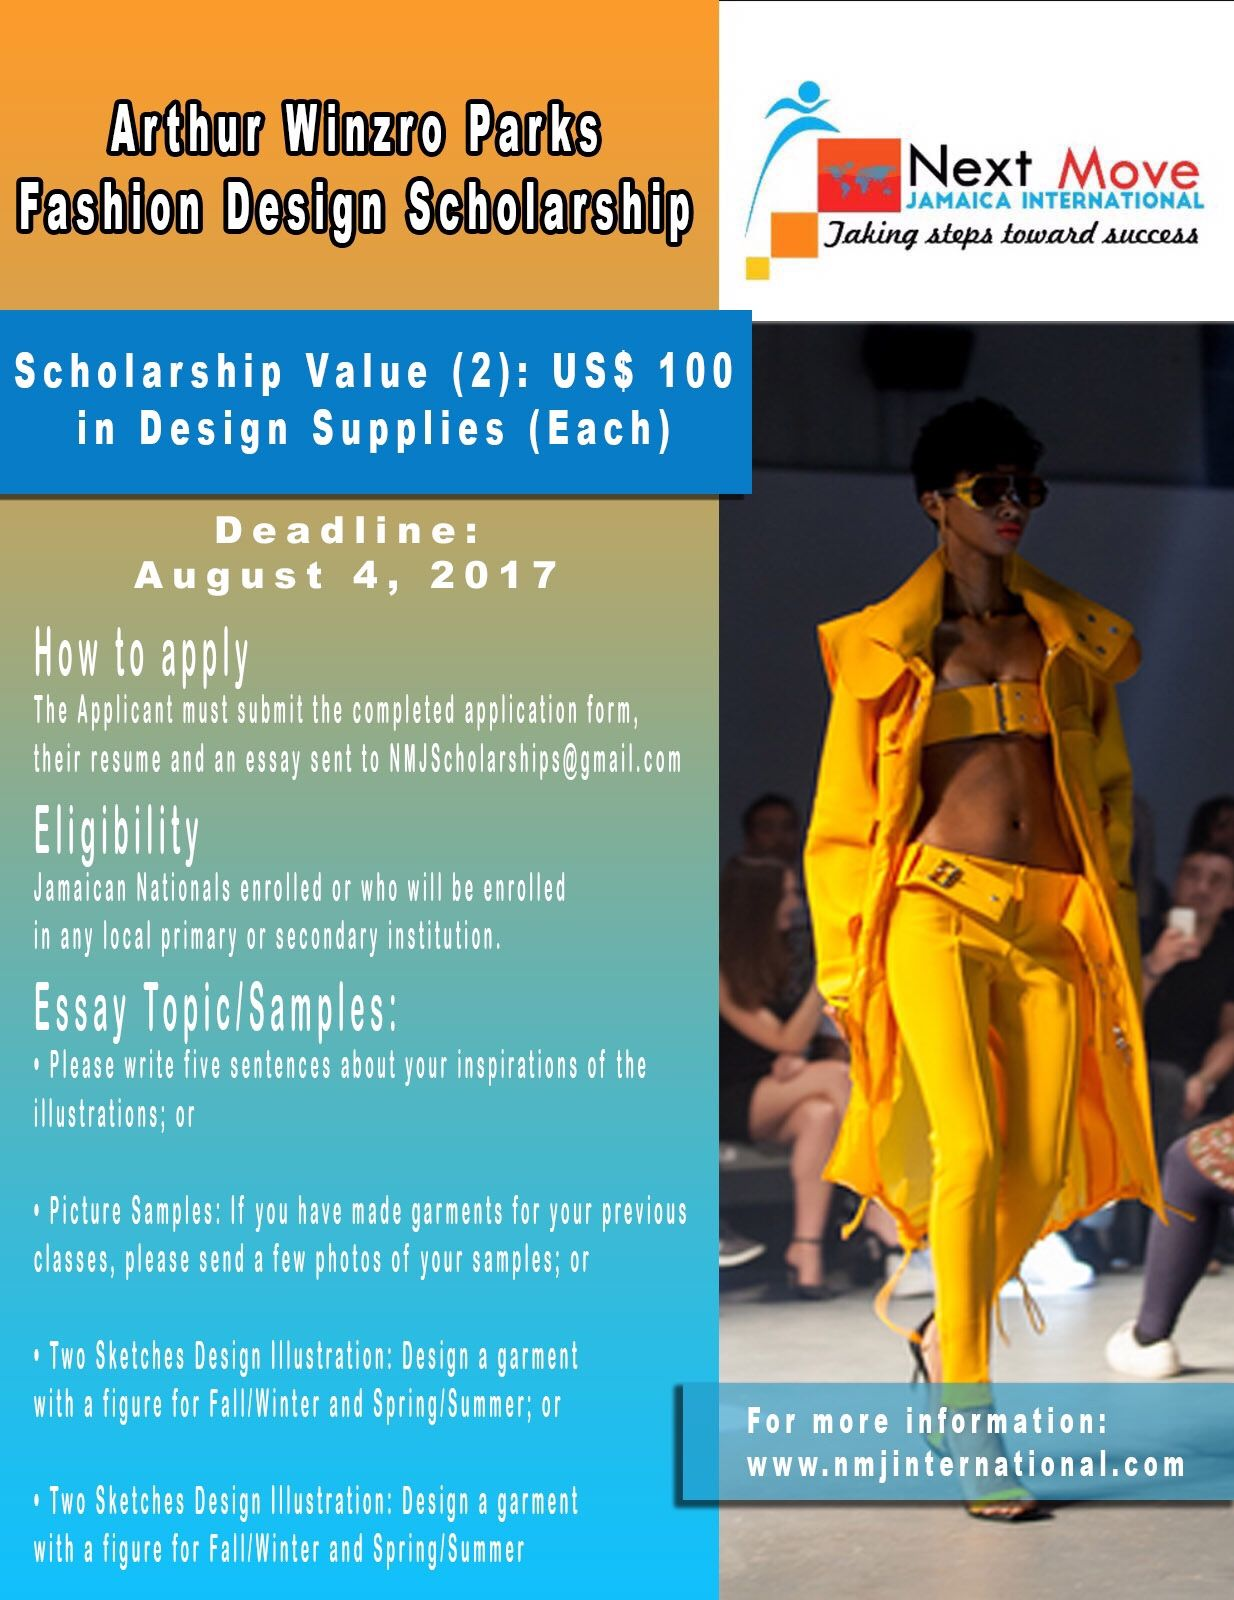 Arthur Winzro Parks Fashion Design Scholarships For Students In Jamaica One Award At Us 200 By August 4th Scholarships Jamaica How To Apply